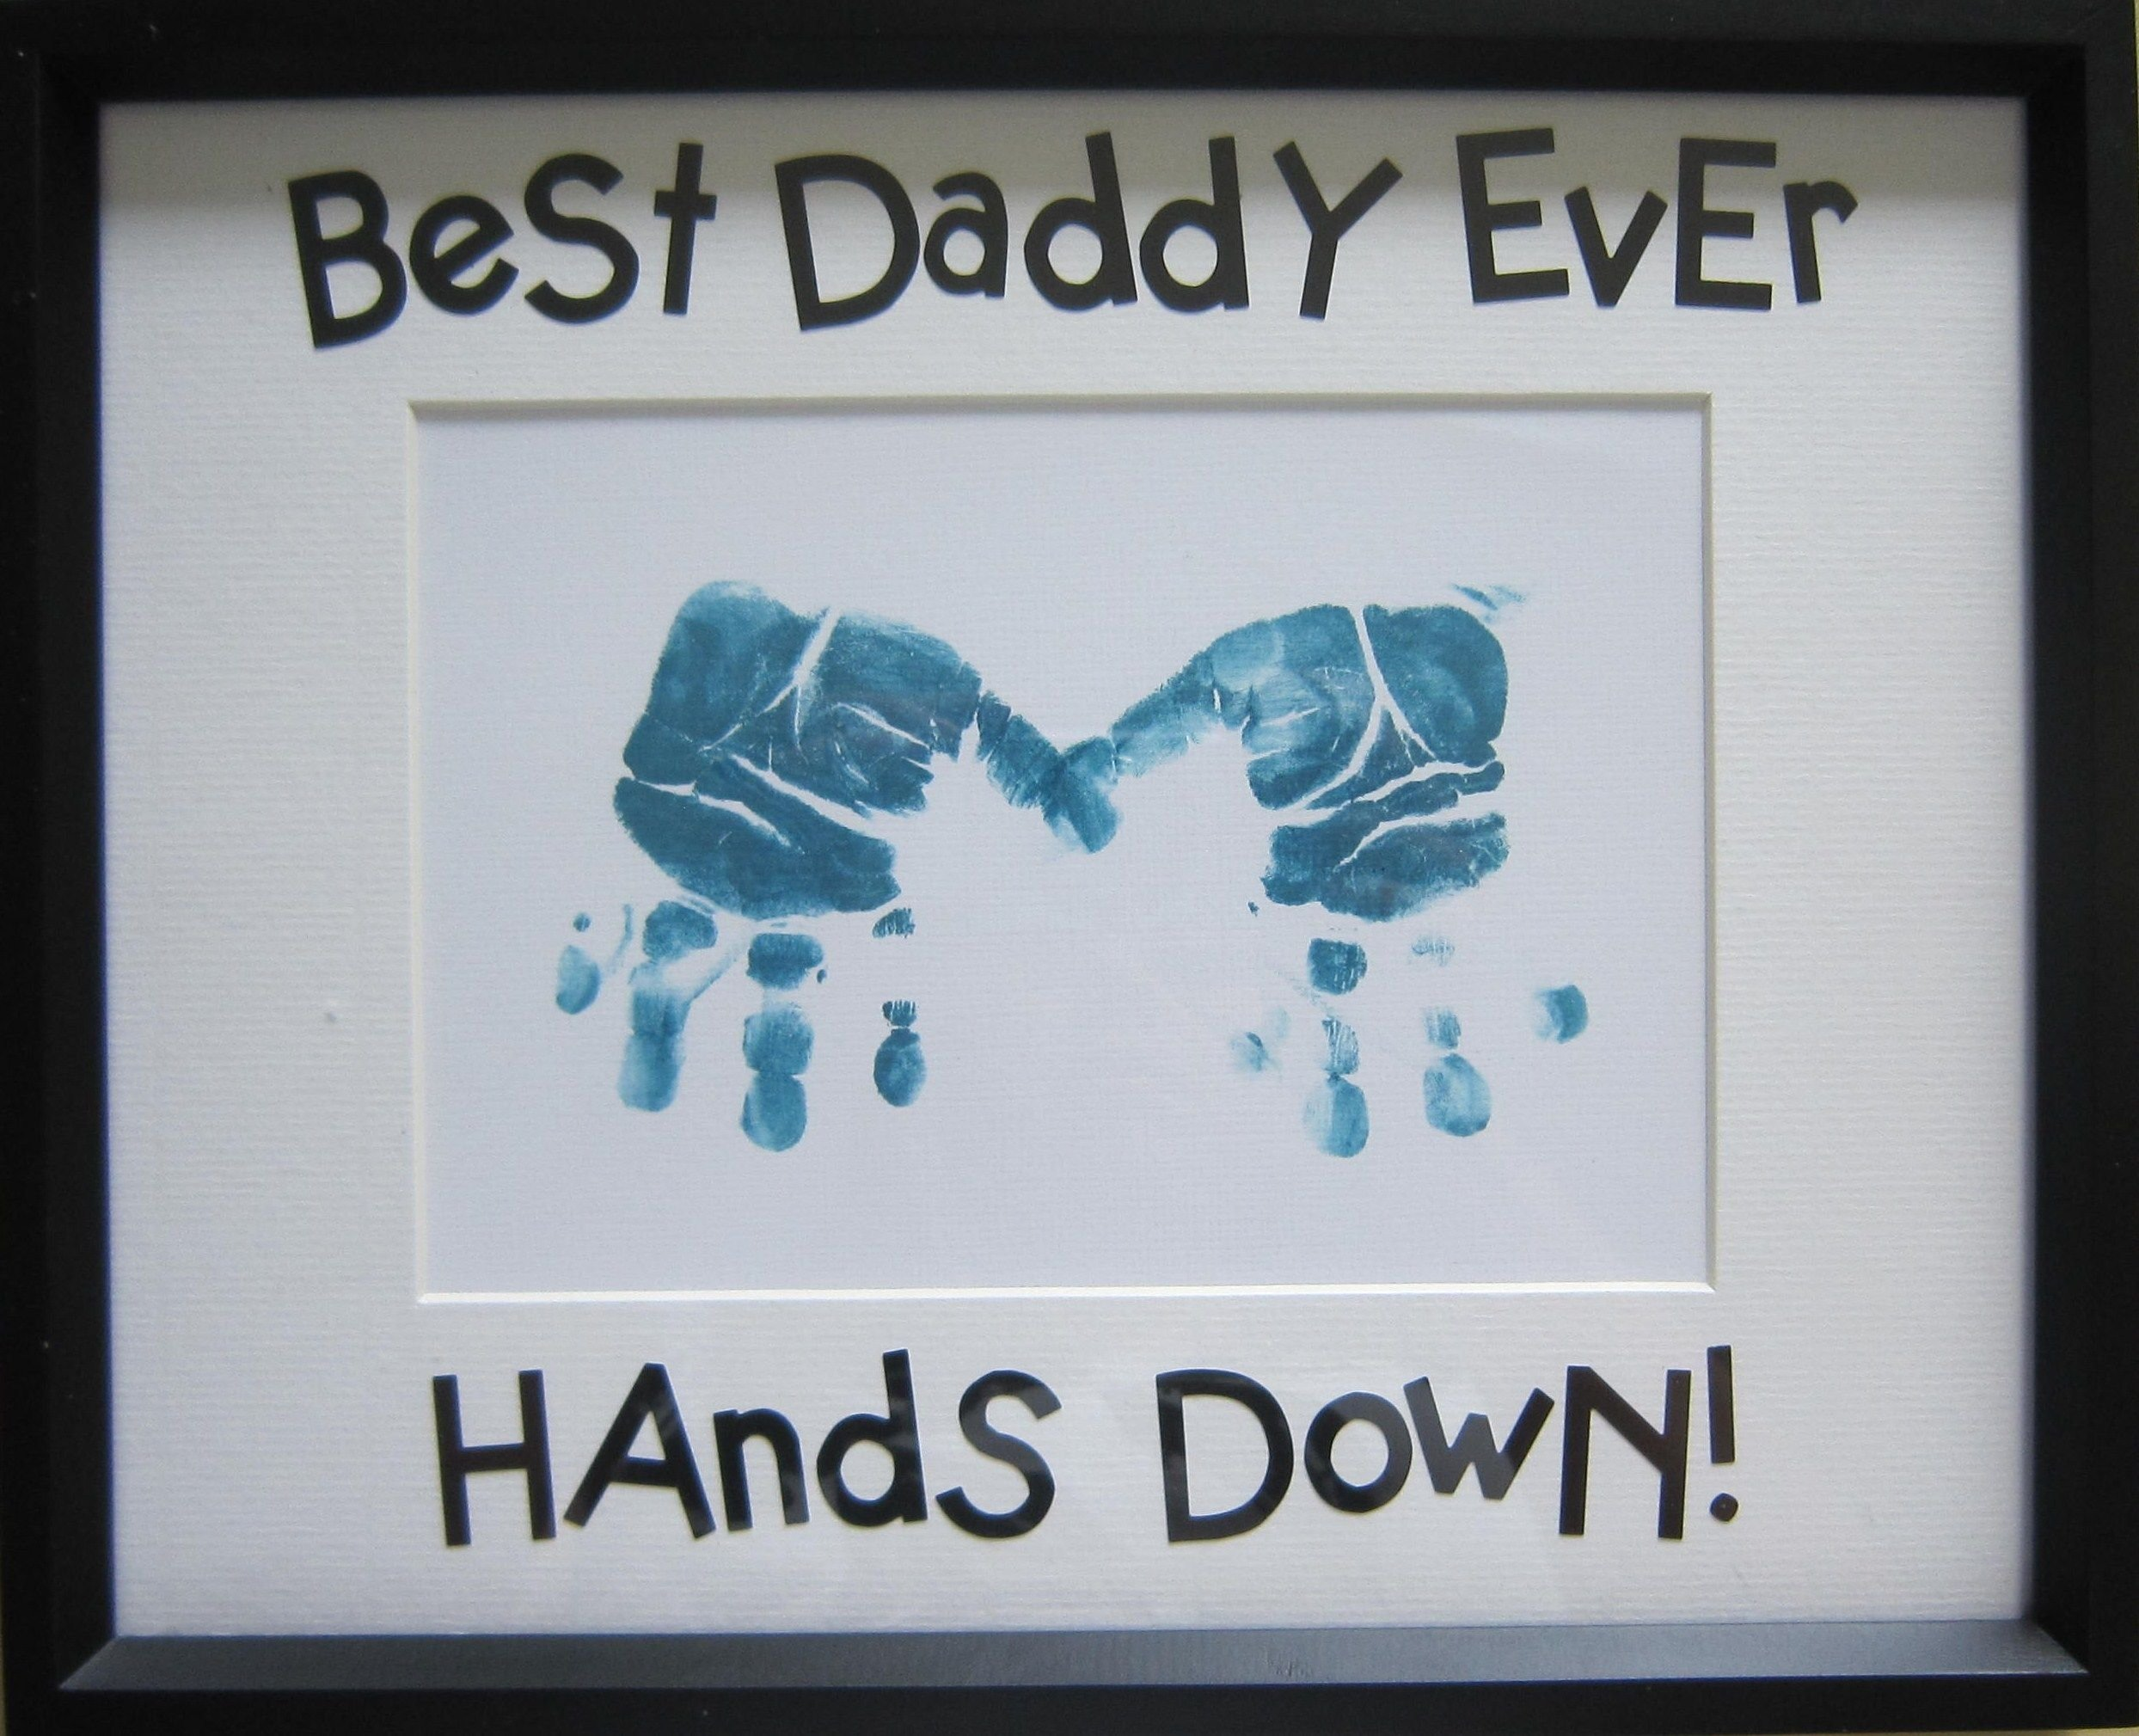 10 Lovable Homemade Father Day Gift Ideas fathers day gift ideas part 2 father gift and craft 3 2020